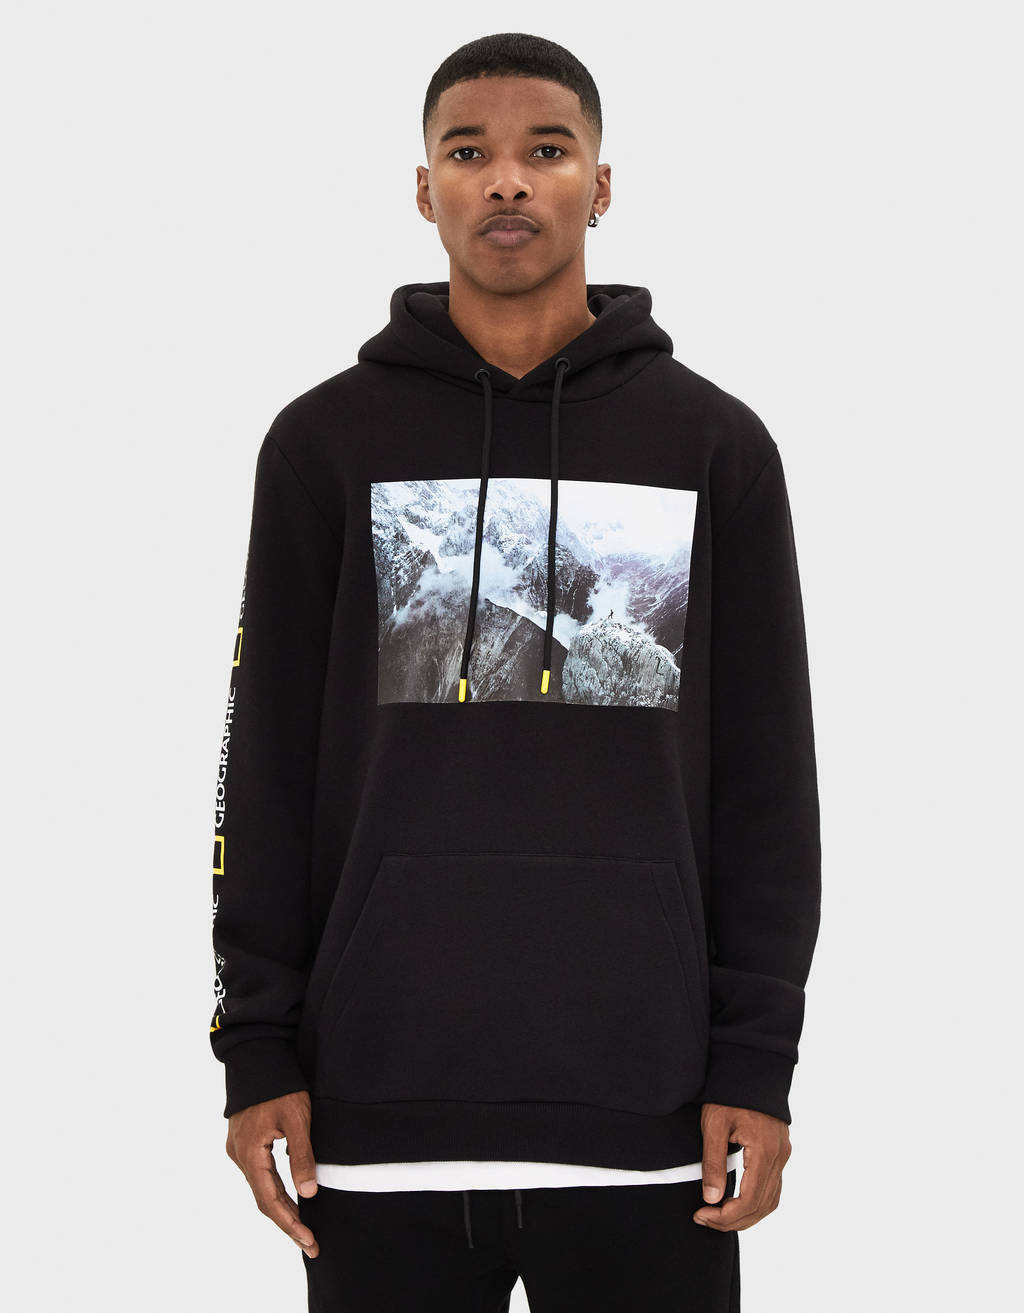 Sweatshirt com capuz da National Geographic